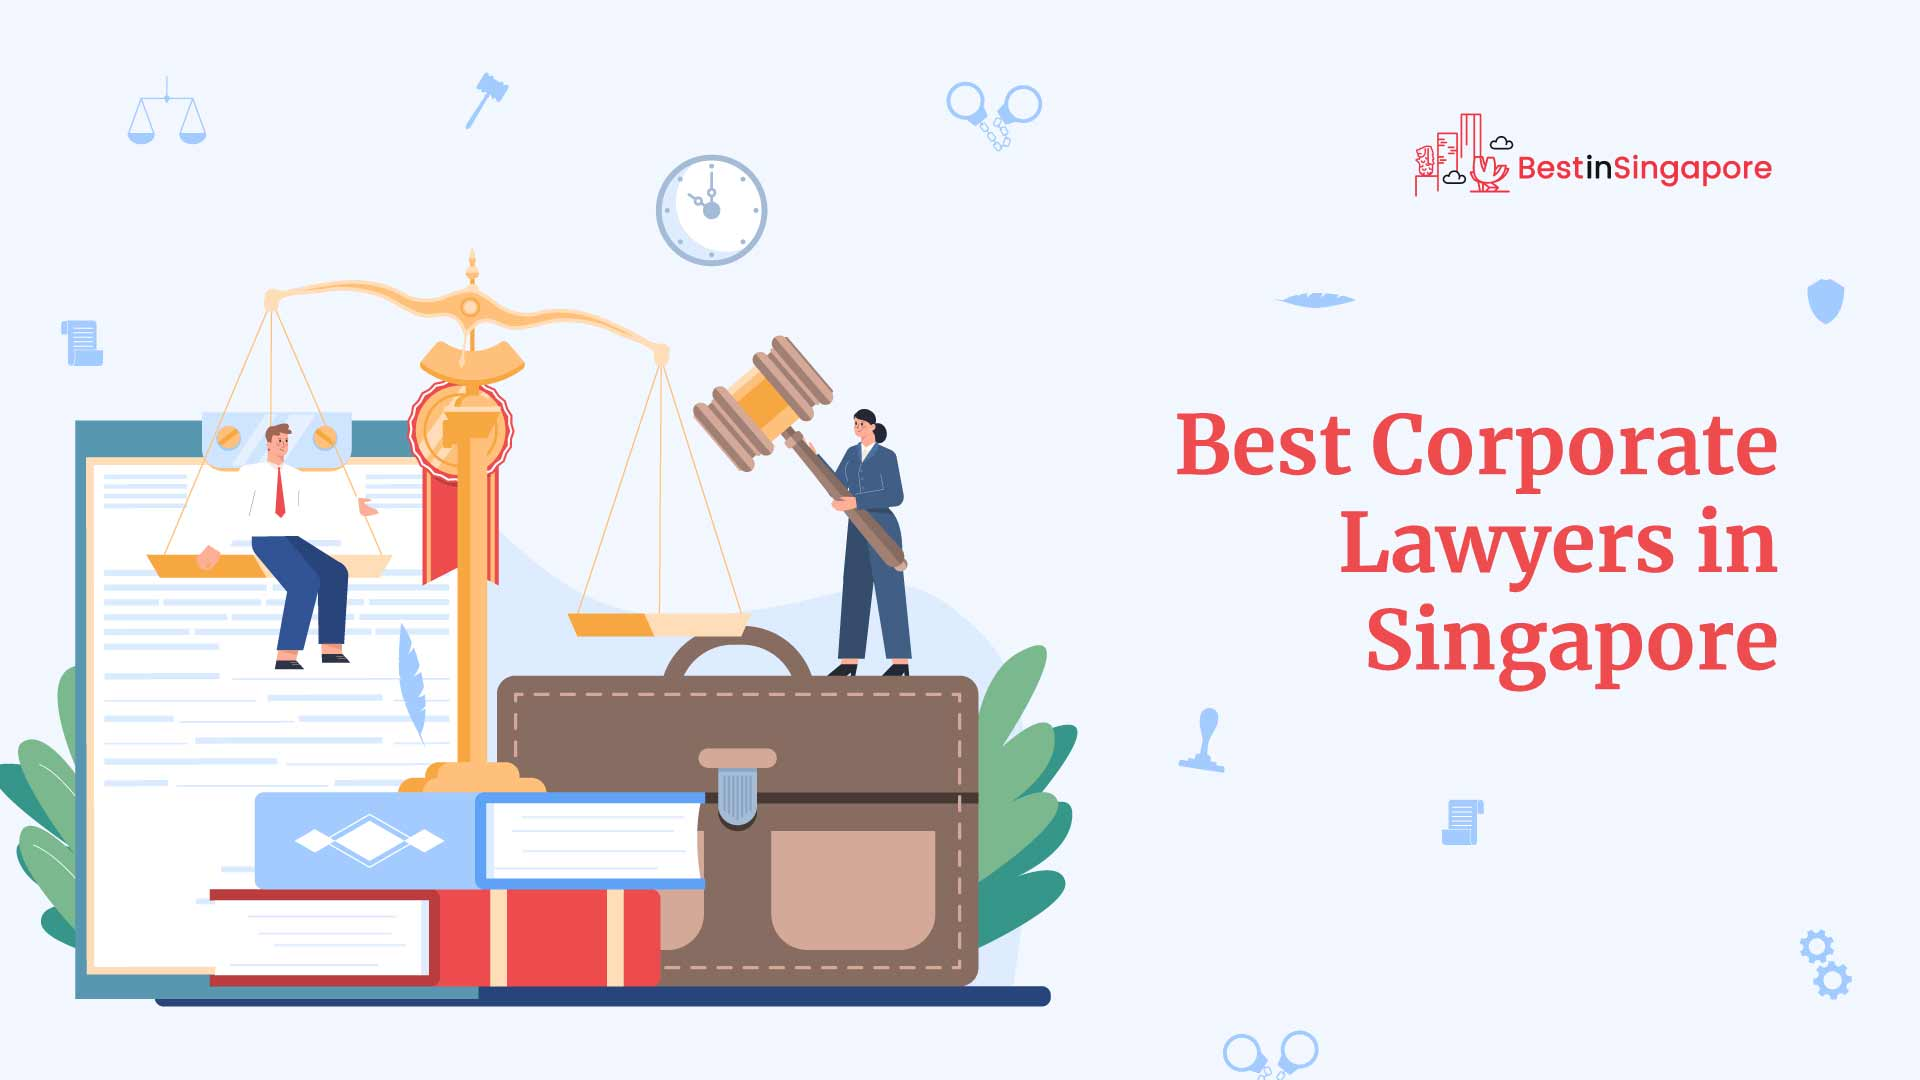 Best Corporate Lawyers in Singapore